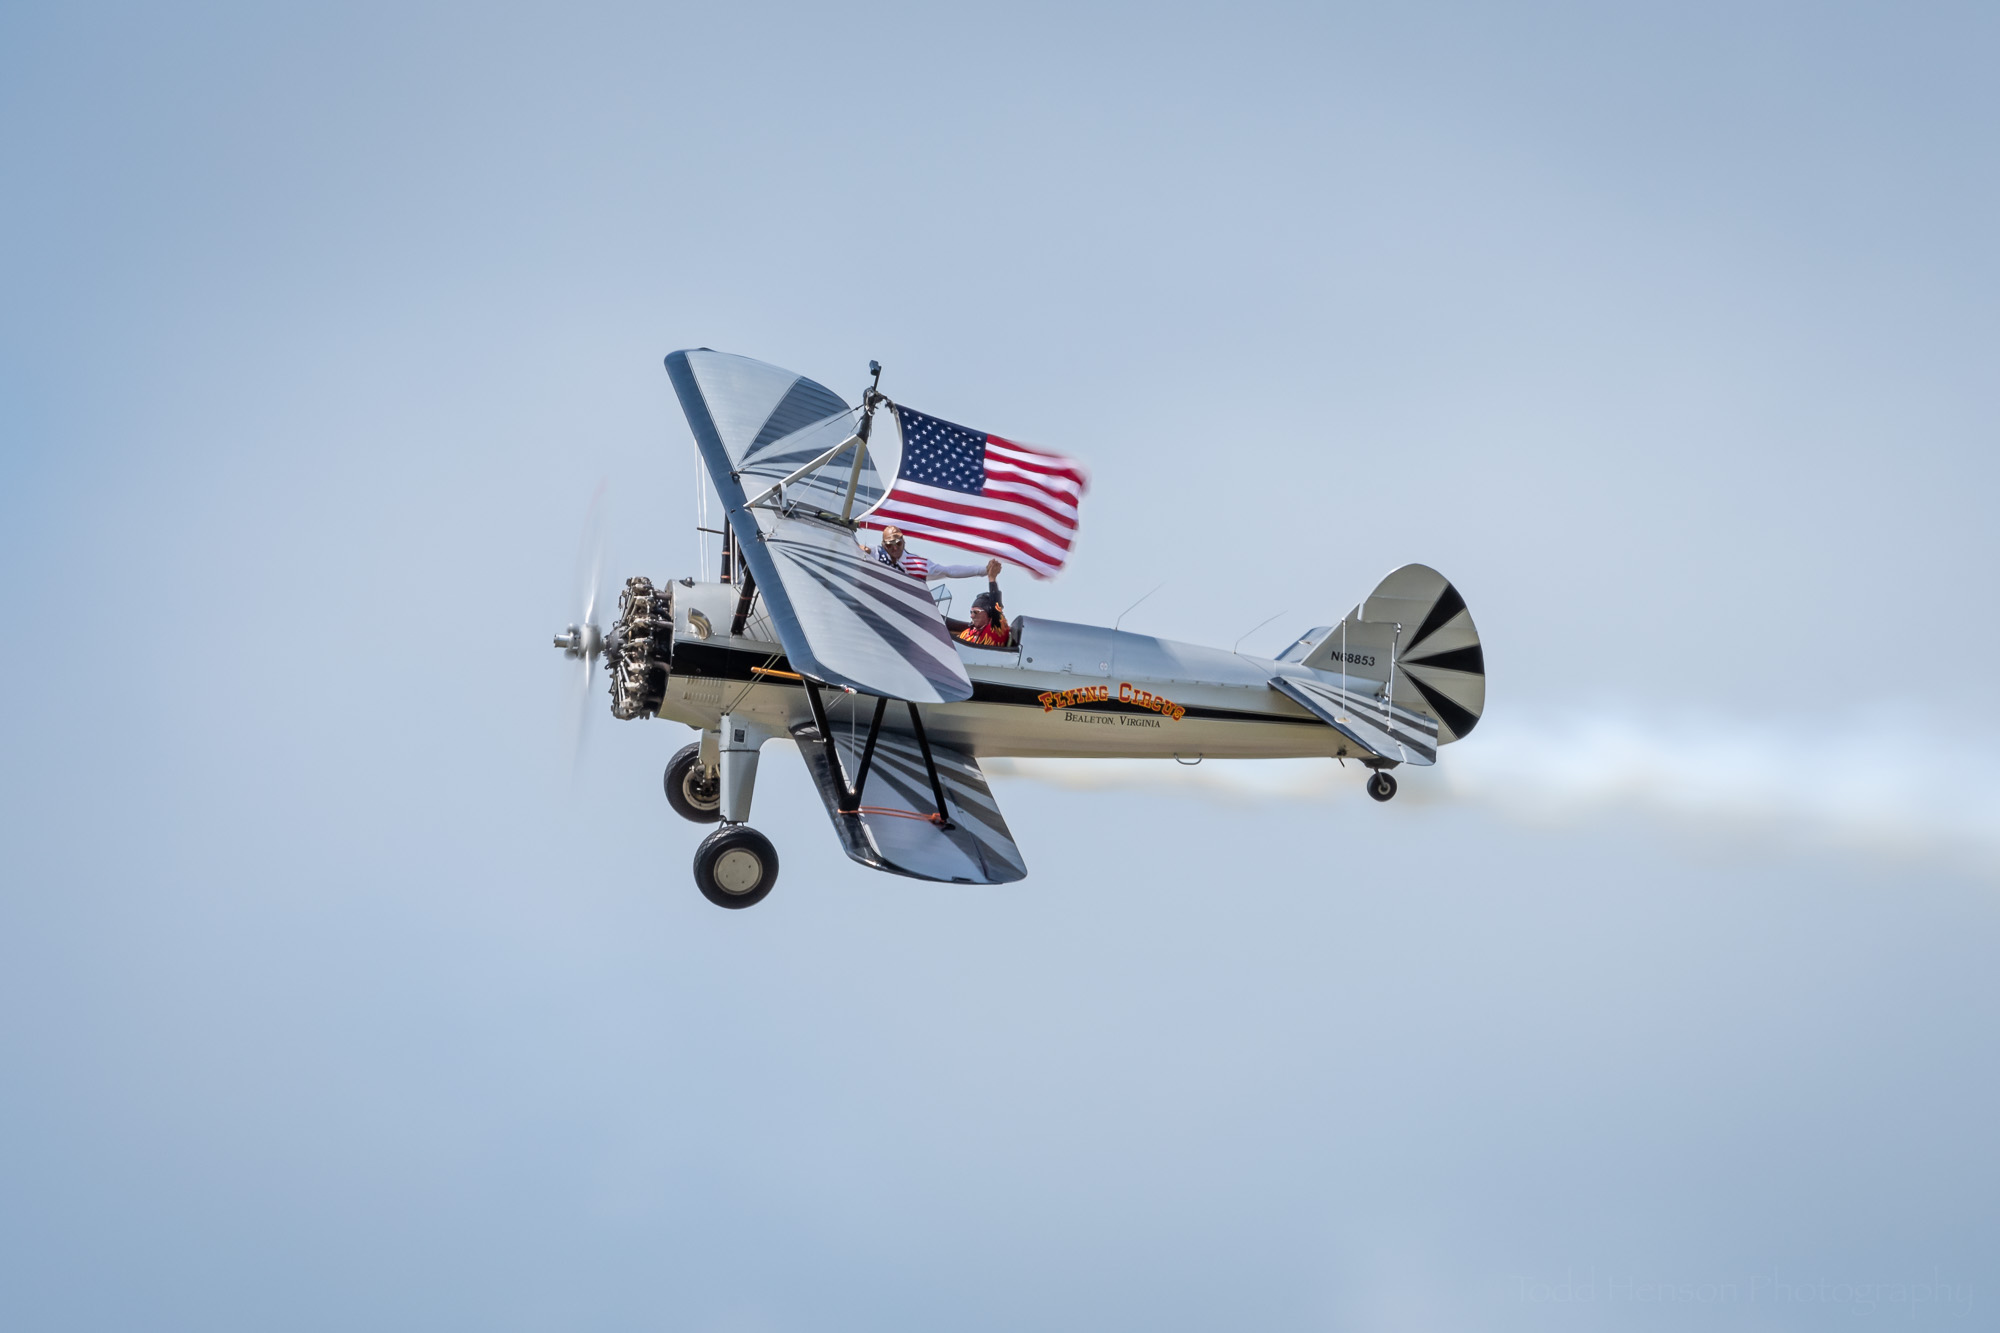 The Flying Circus of Bealeton, Virginia, in the 2019 Manassas Airshow, displaying the American flag.